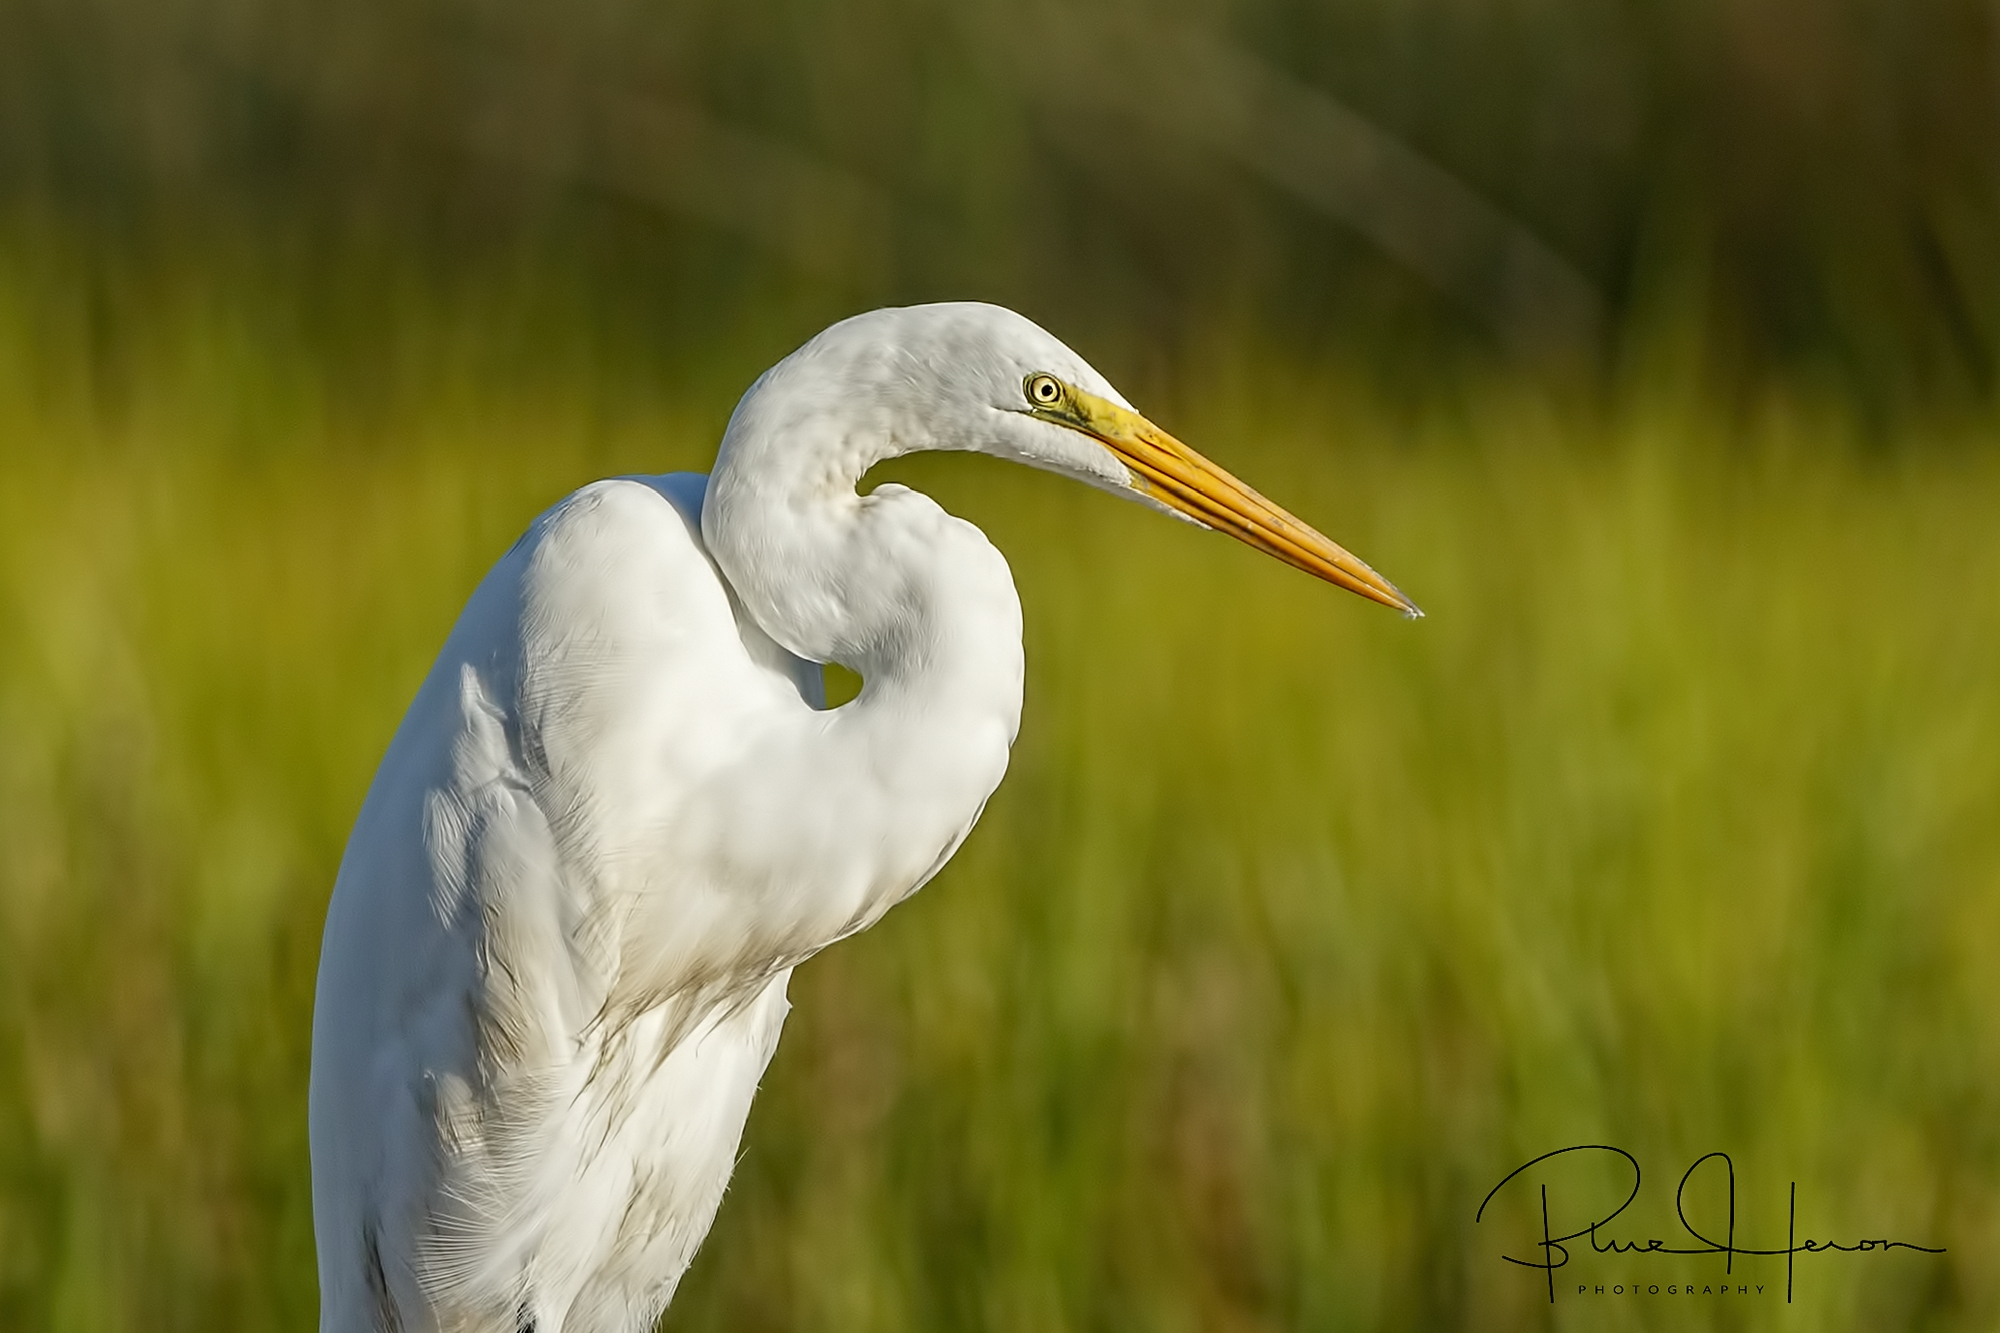 A graceful and elegant bird, the Great Egret is one of my favorite birds to photograph.